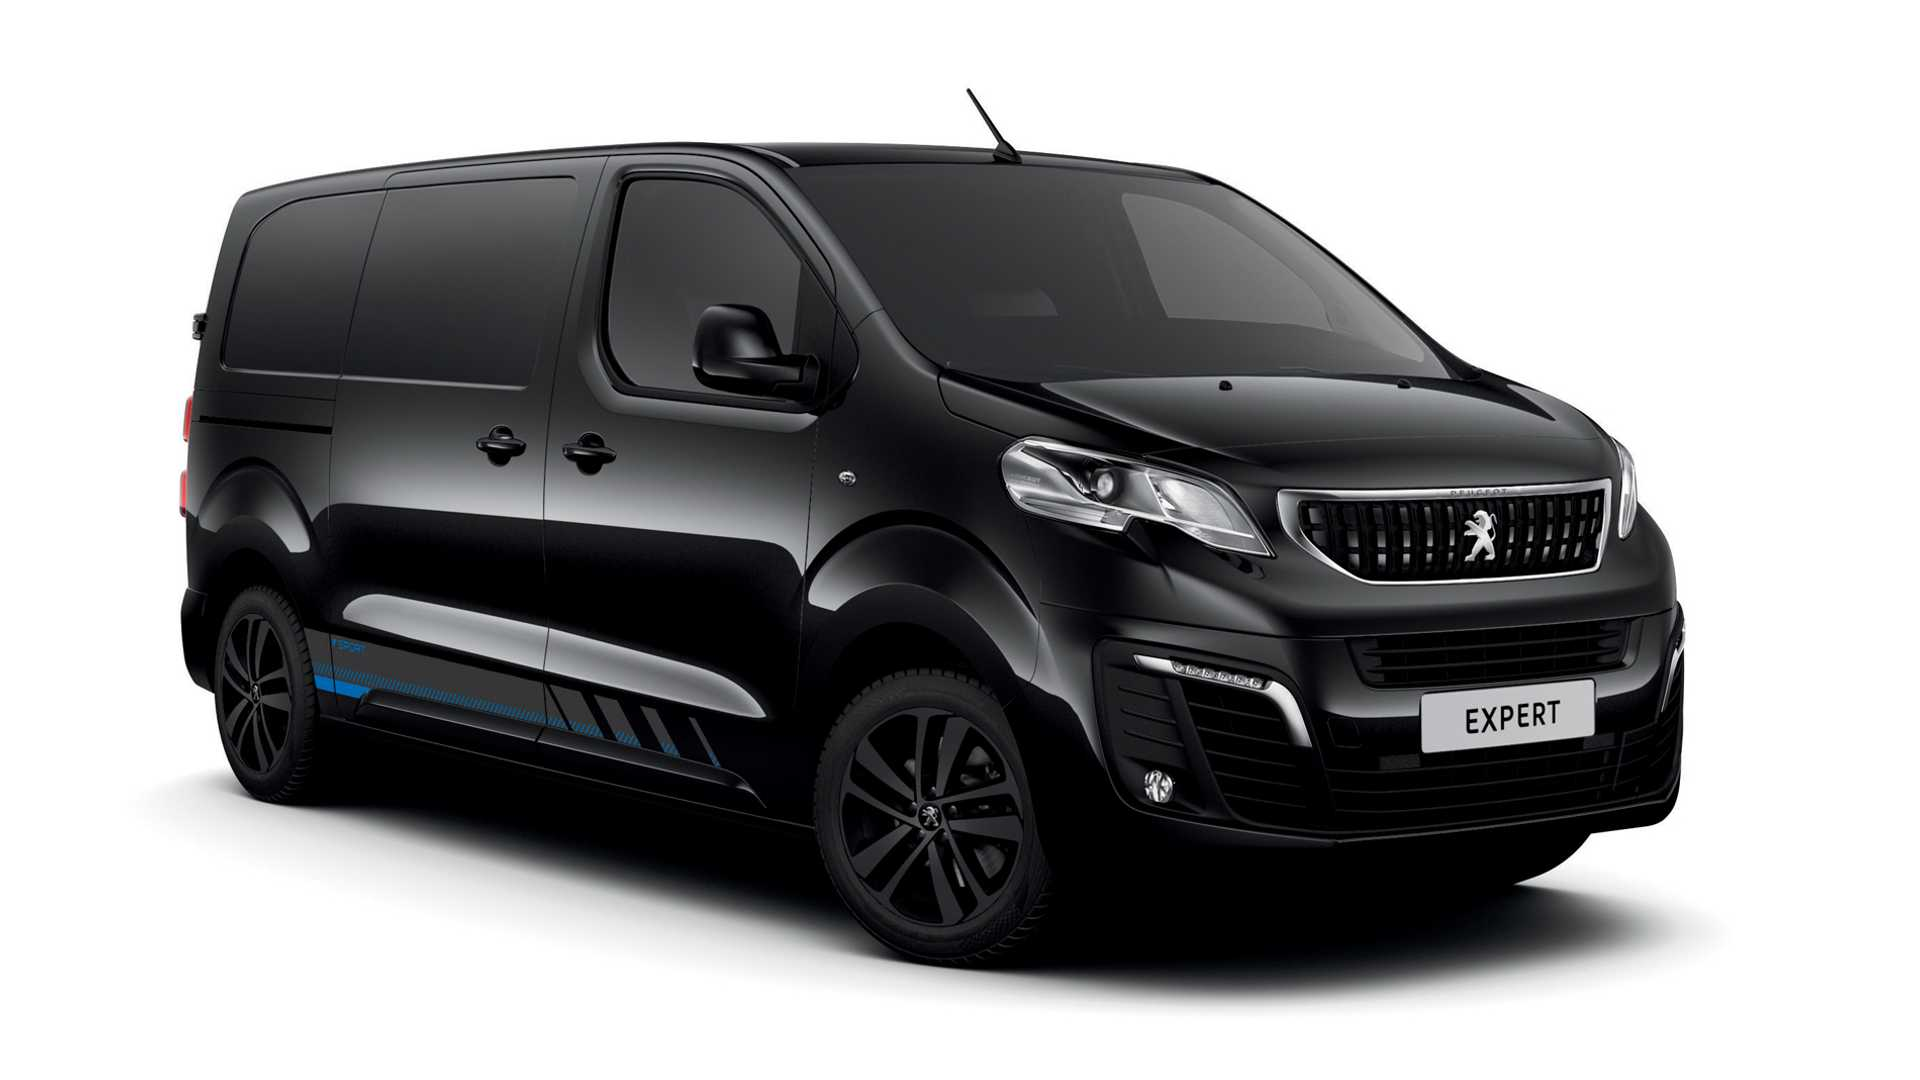 Peugeot unveils high-end Expert Sport Edition van